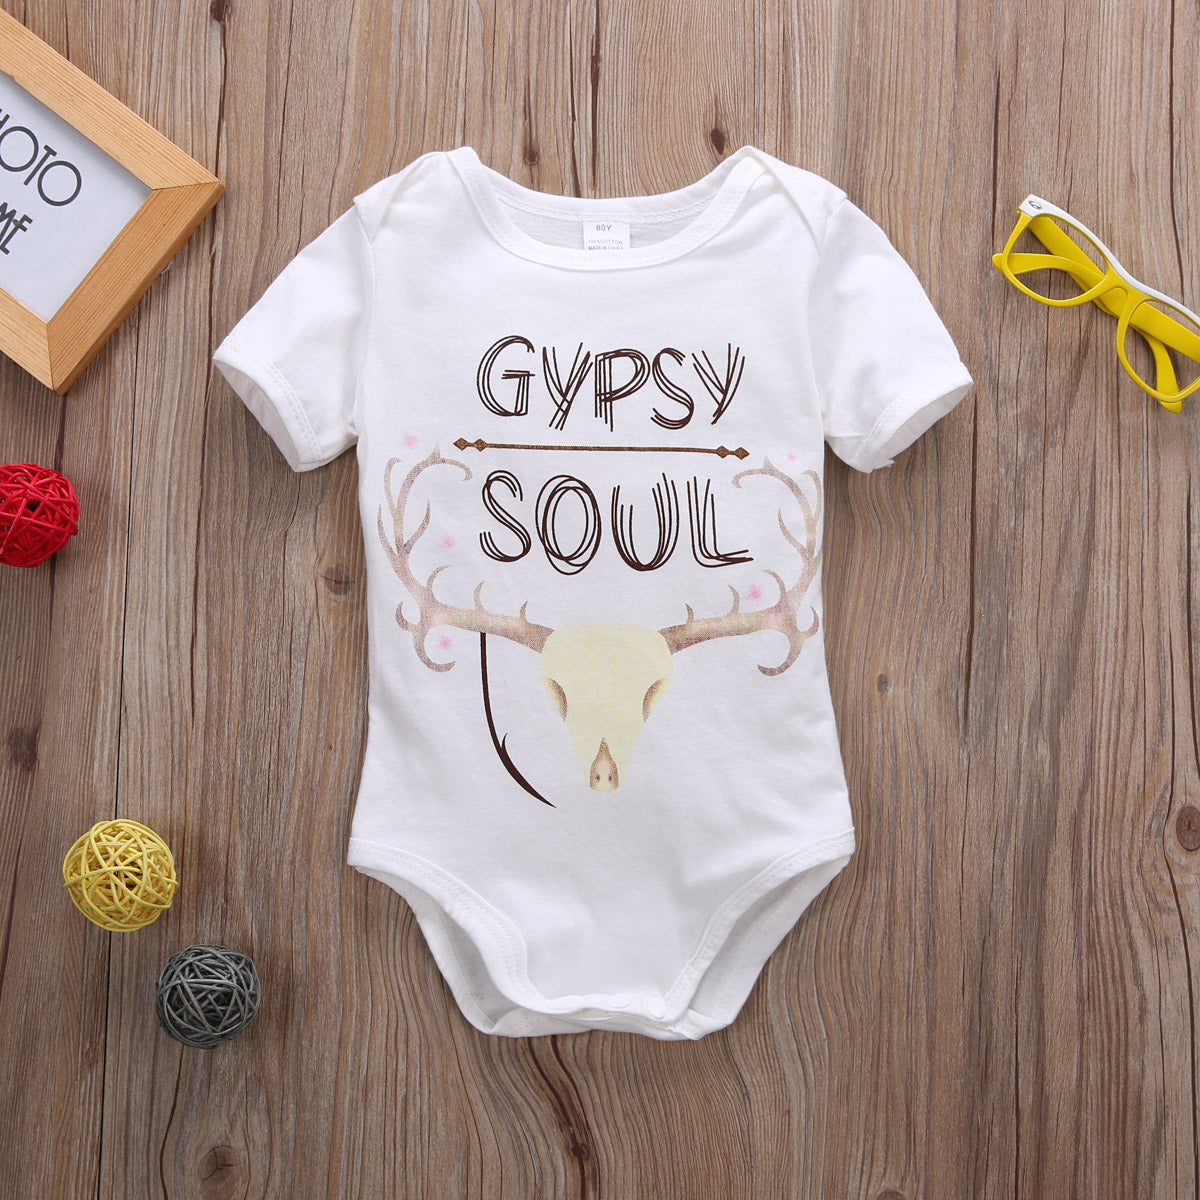 Newborn Baby Boy Girl Summer Sunsuit short sleeve Bodysuit Clothing Outfits